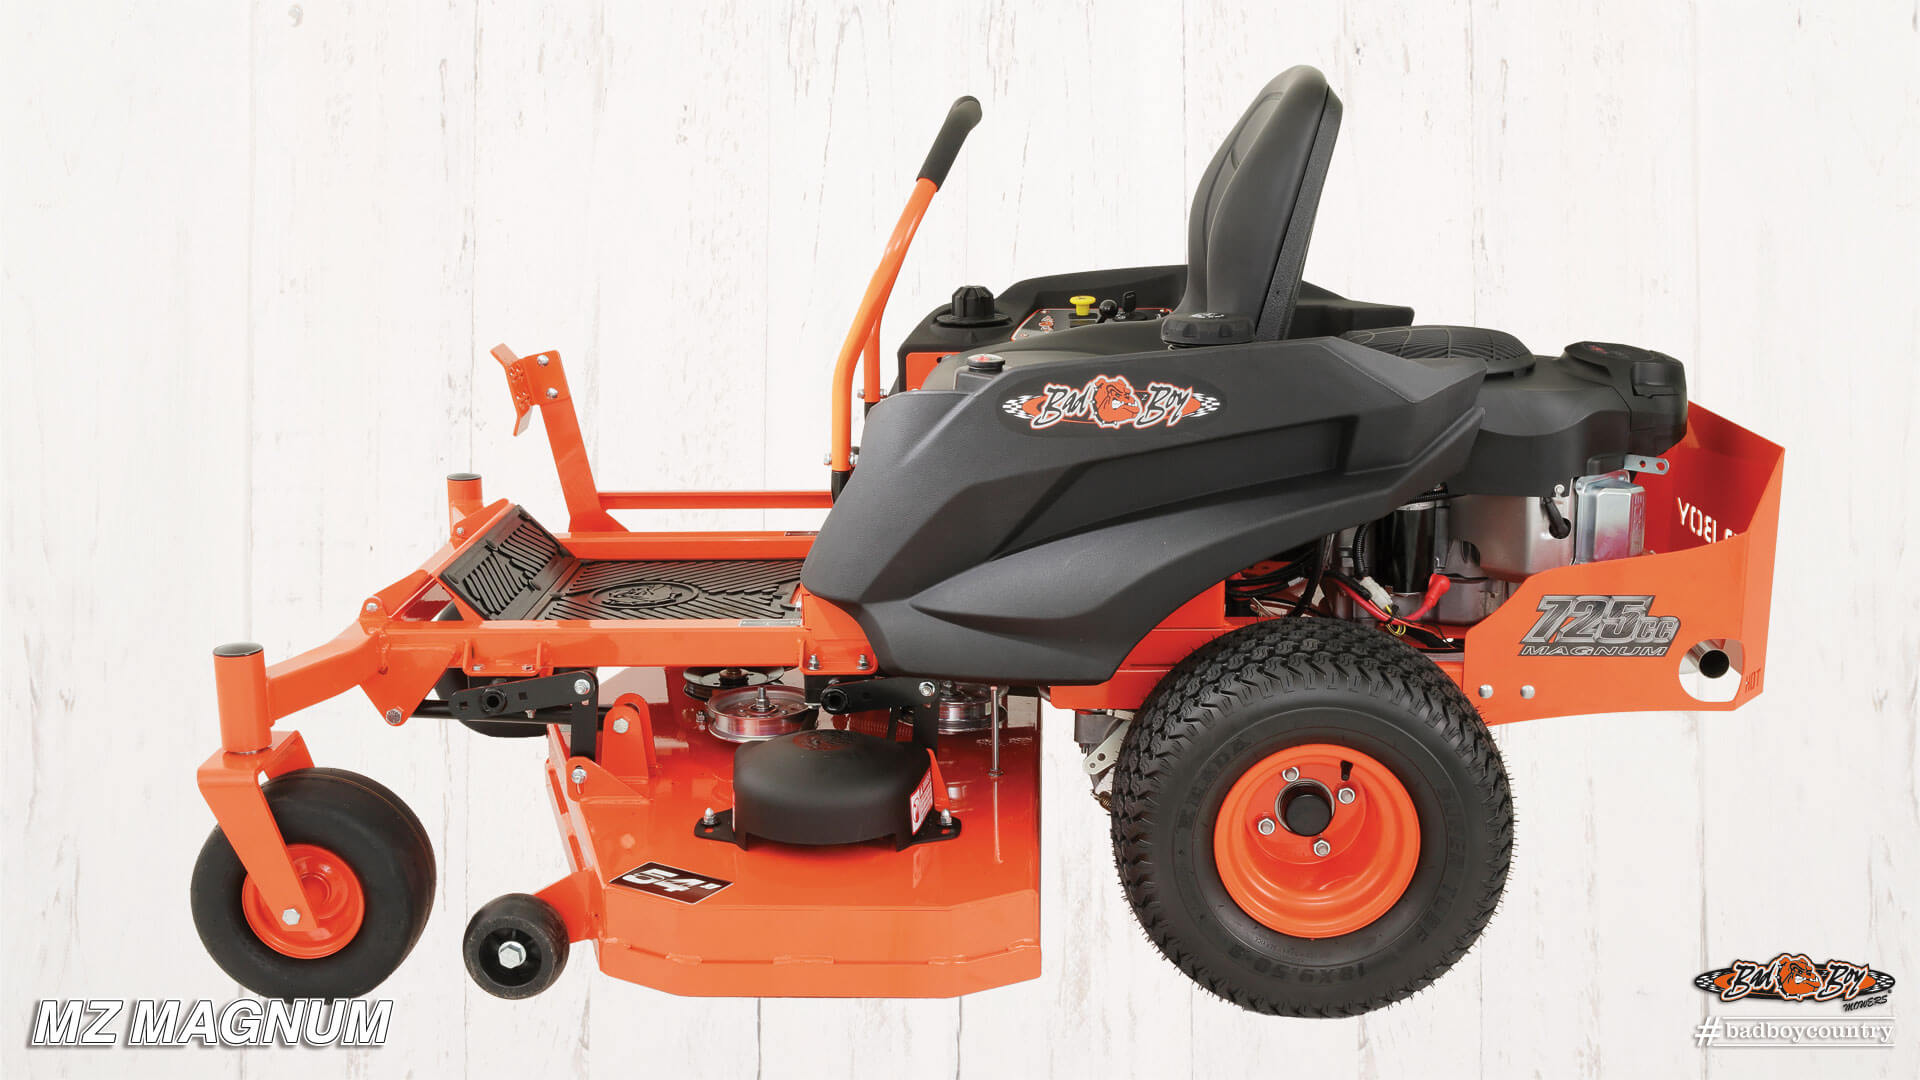 2017 Bad Boy Mowers 5400 (Kawasaki) MZ Magnum in Gresham, Oregon